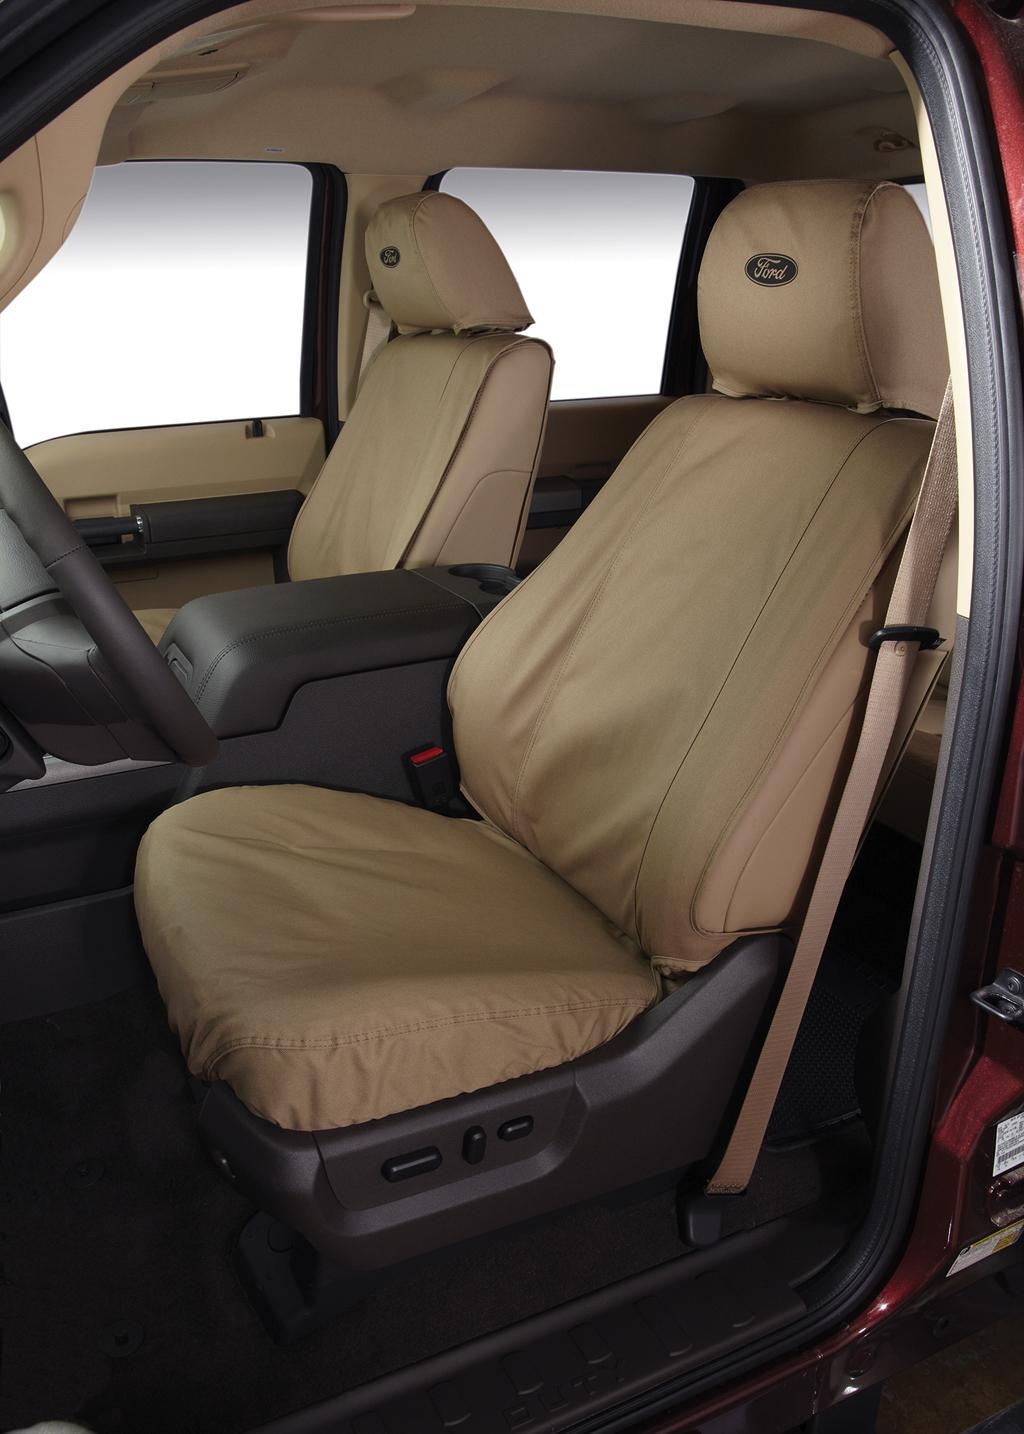 Seat Covers - Front, 40/20/40, Taupe